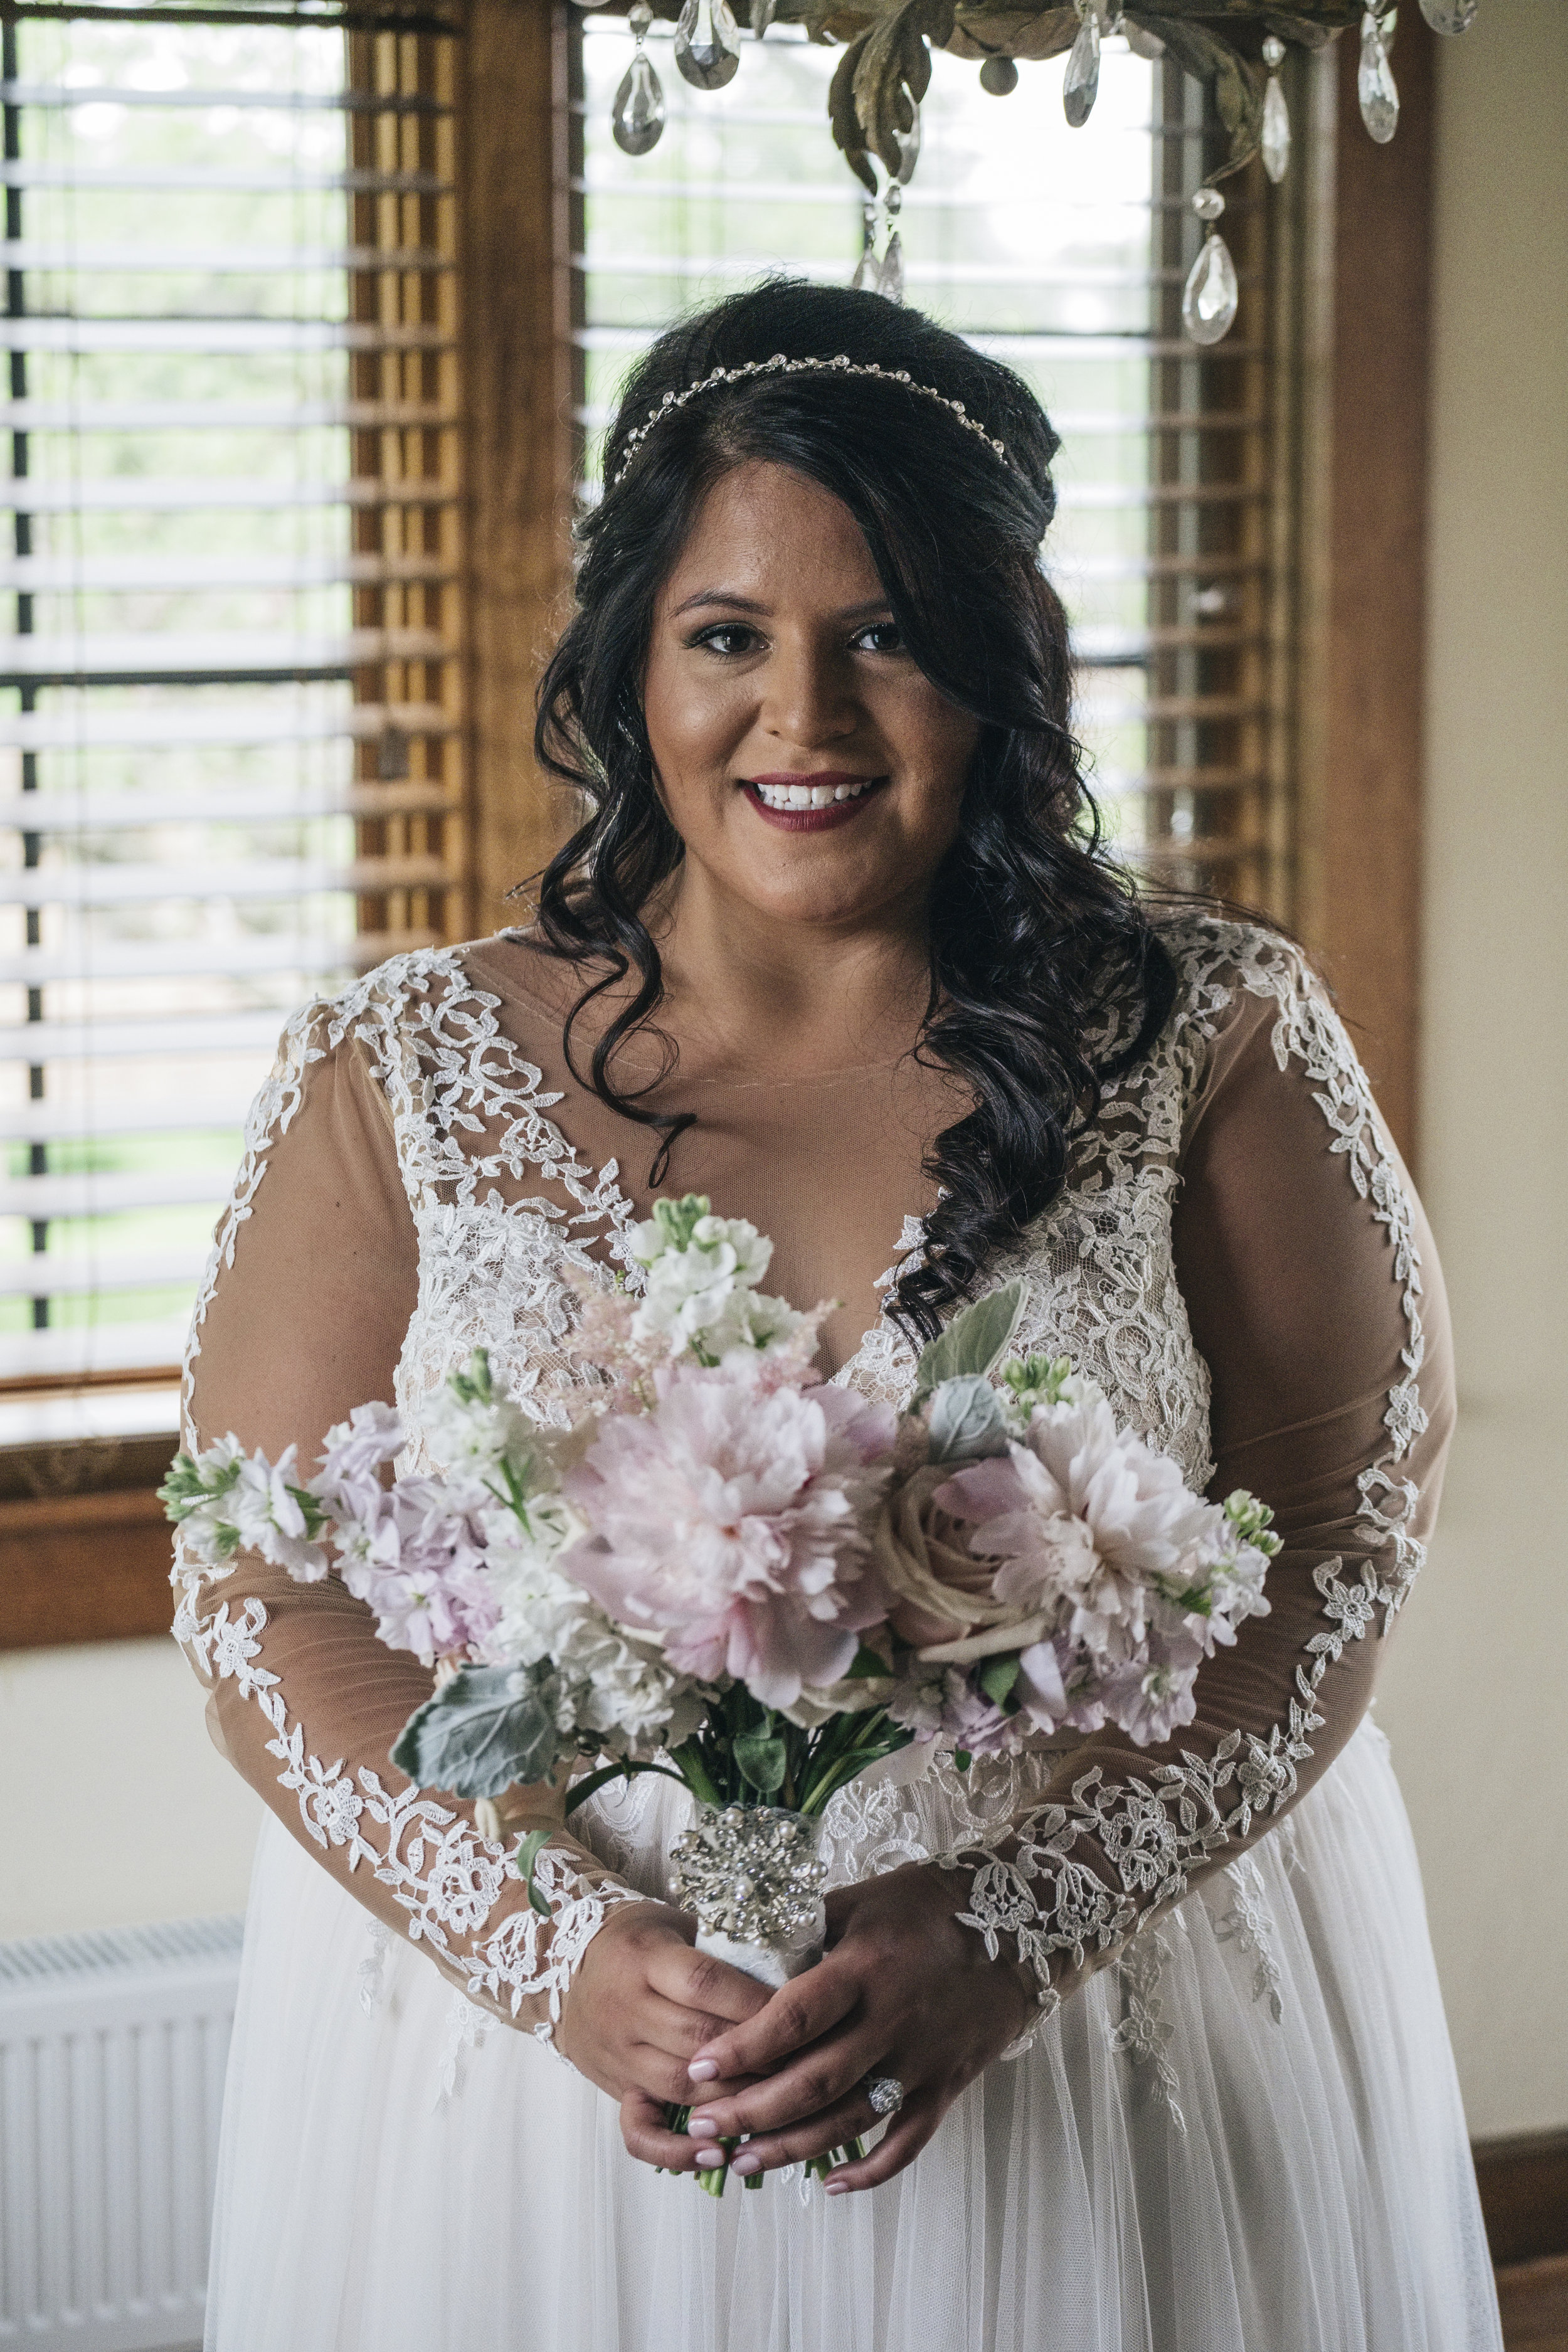 Bride with Bouquet Made by La Boutique Nostalgie on Wedding Day with Toledo Wedding Photographers